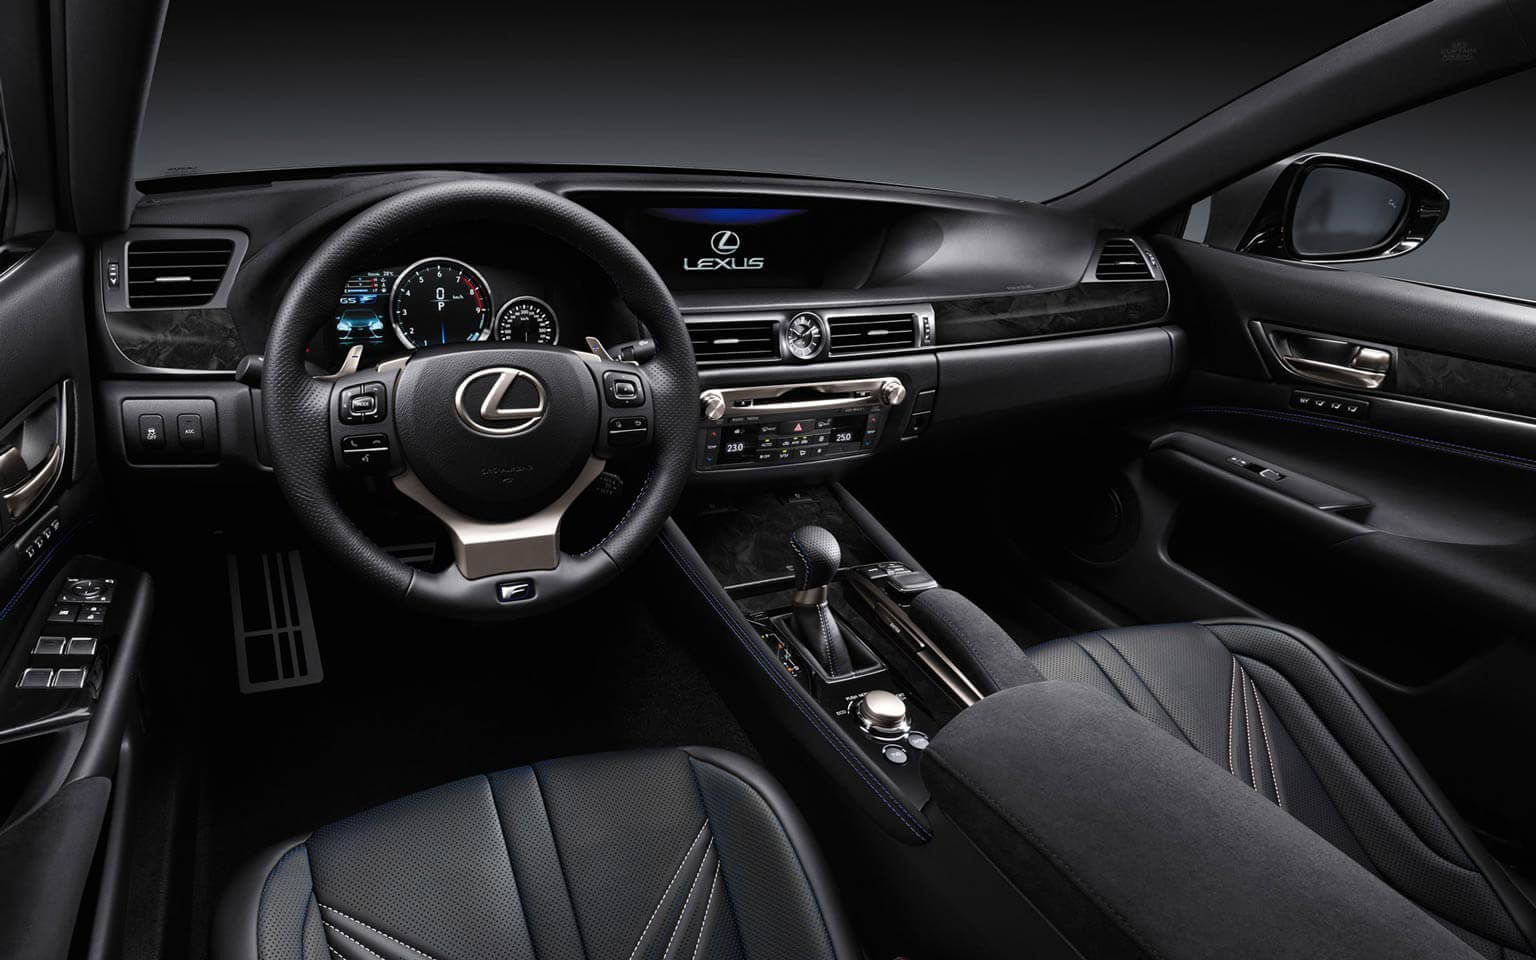 GS F shown in Black Leather with Carbon Composite Trim